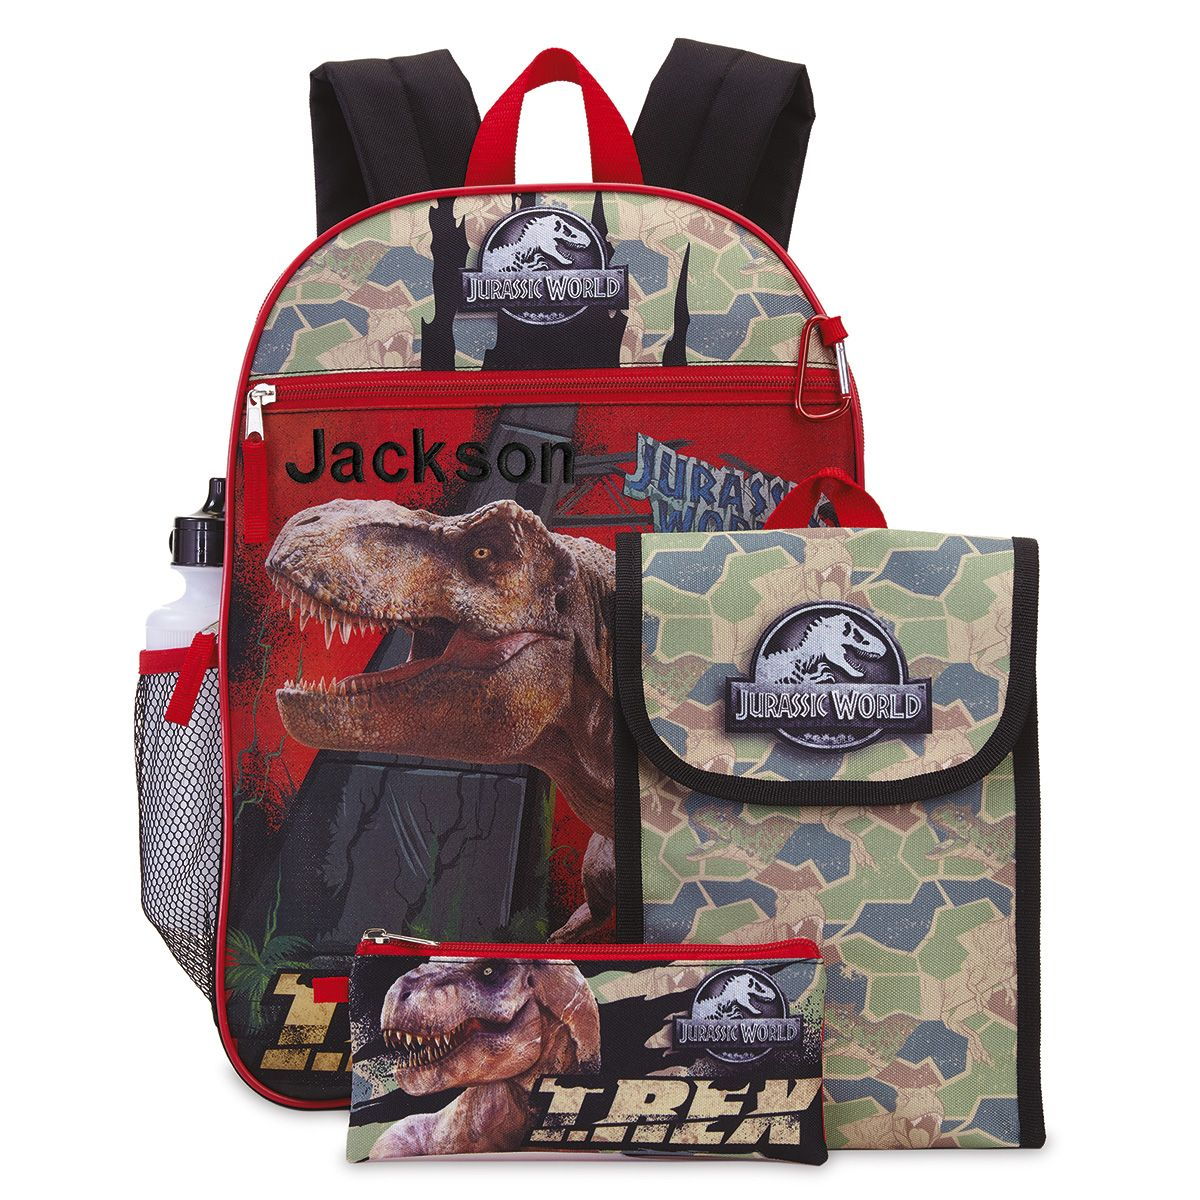 Personalized 5-in-1 Jurassic World Backpack Set